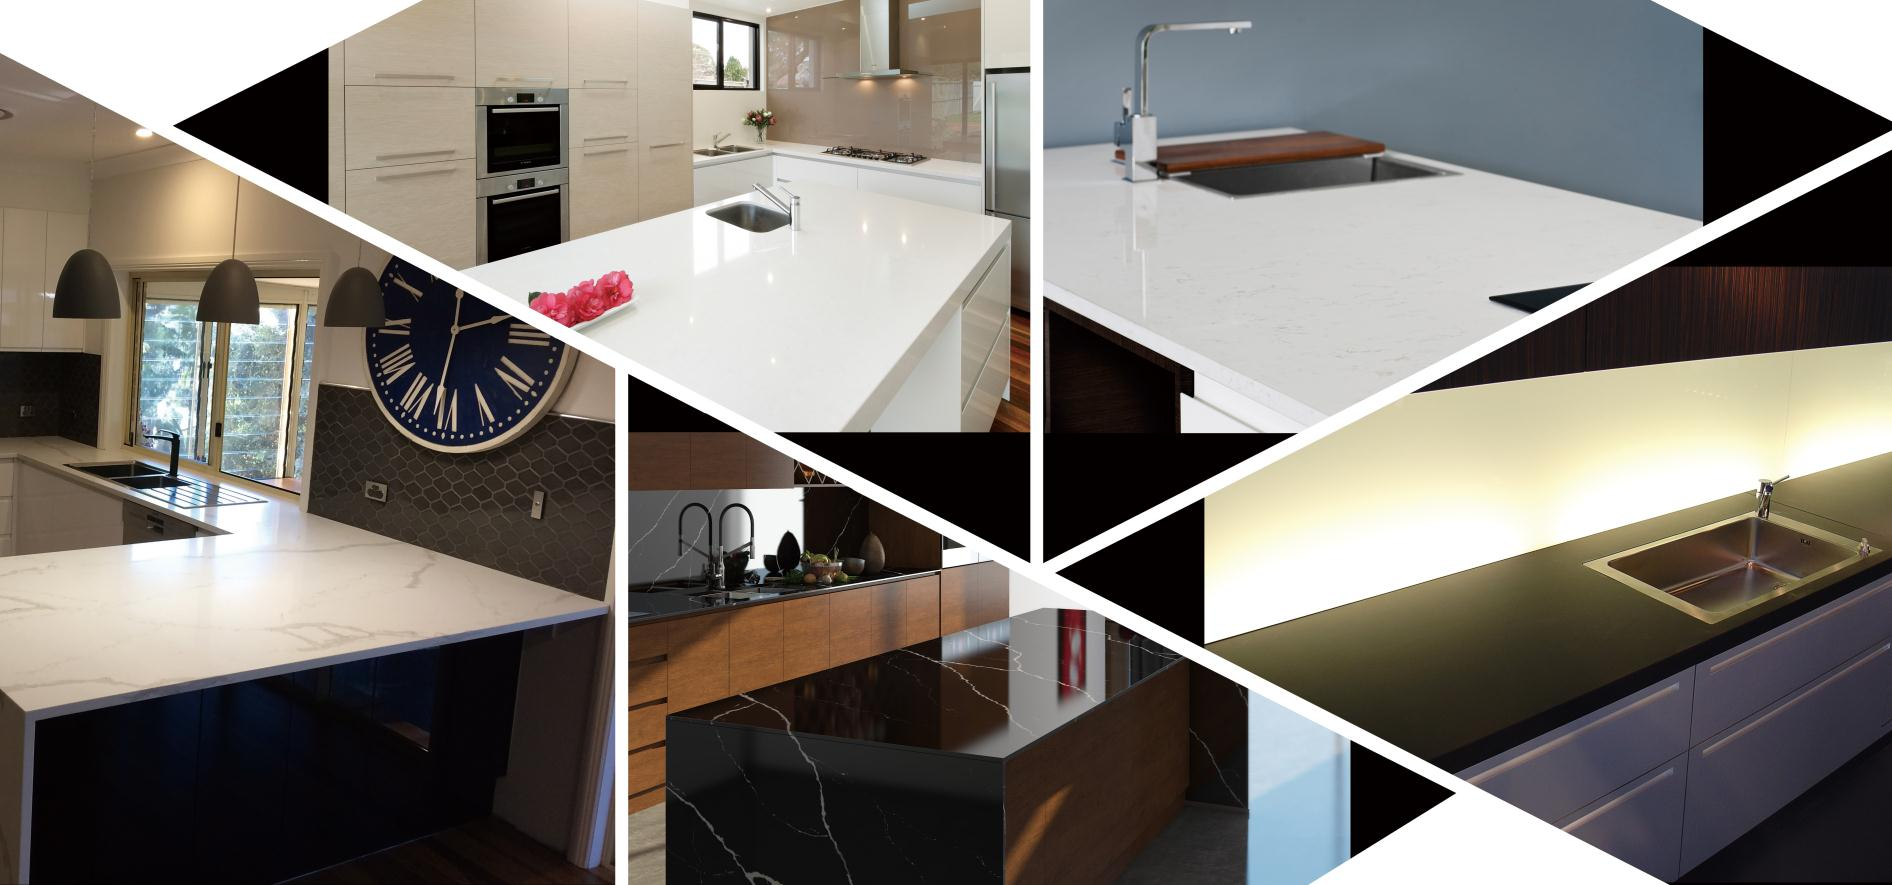 Why Quartz Stone From Vinaquartz Has Become Such A Popular Countertop Stone?